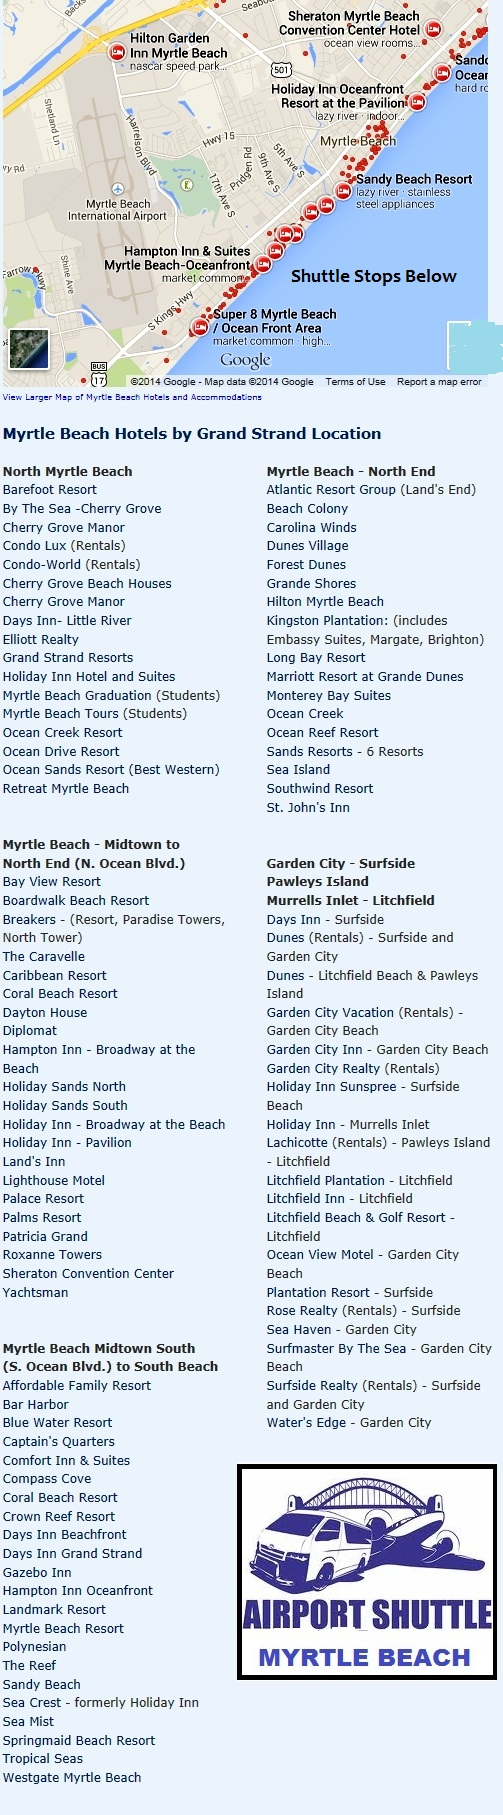 Hotels Resorts Official Site Myrtle Beach Int L